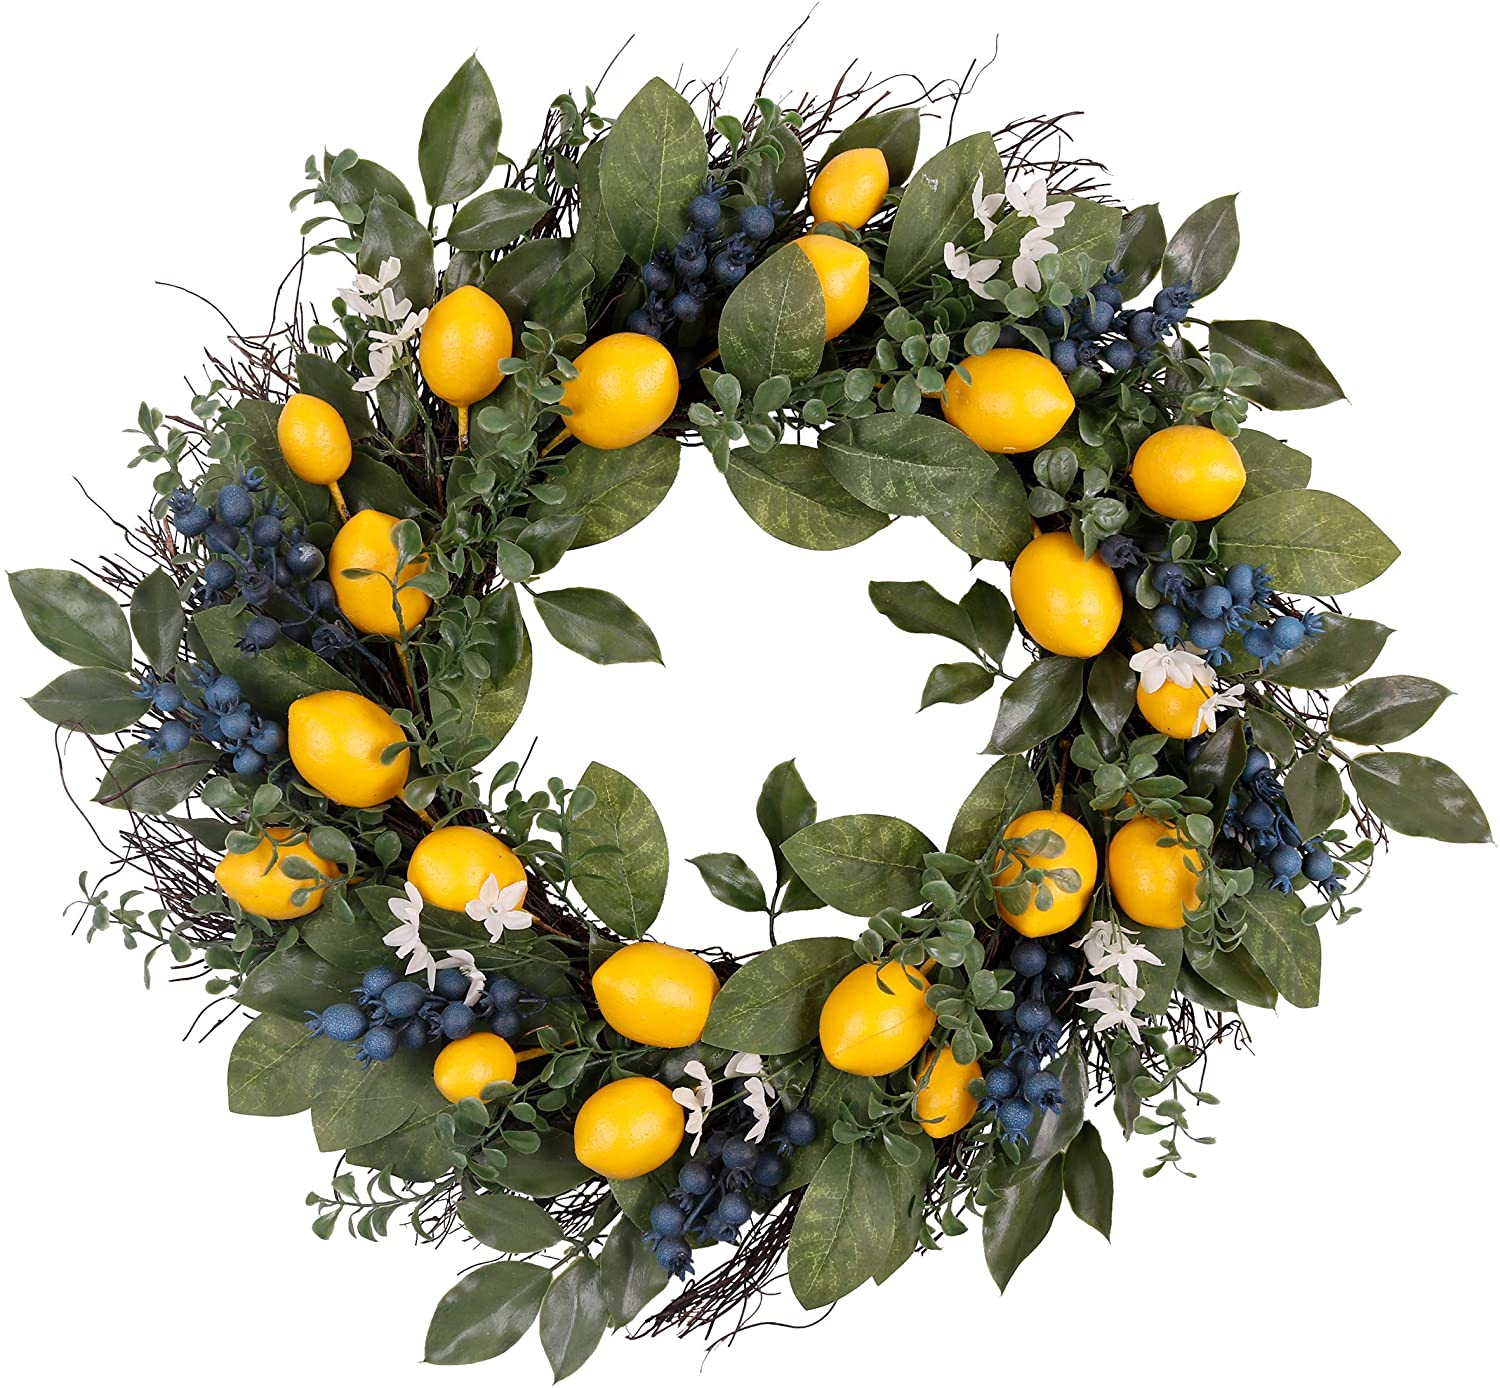 Valery Madelyn 24 Inch Spring Fruit Wreath with Artificial Yellow Lemons, Blueberry and Green Leaves, Fall Autumn Summer Wreath for Front Door and Home Decoration